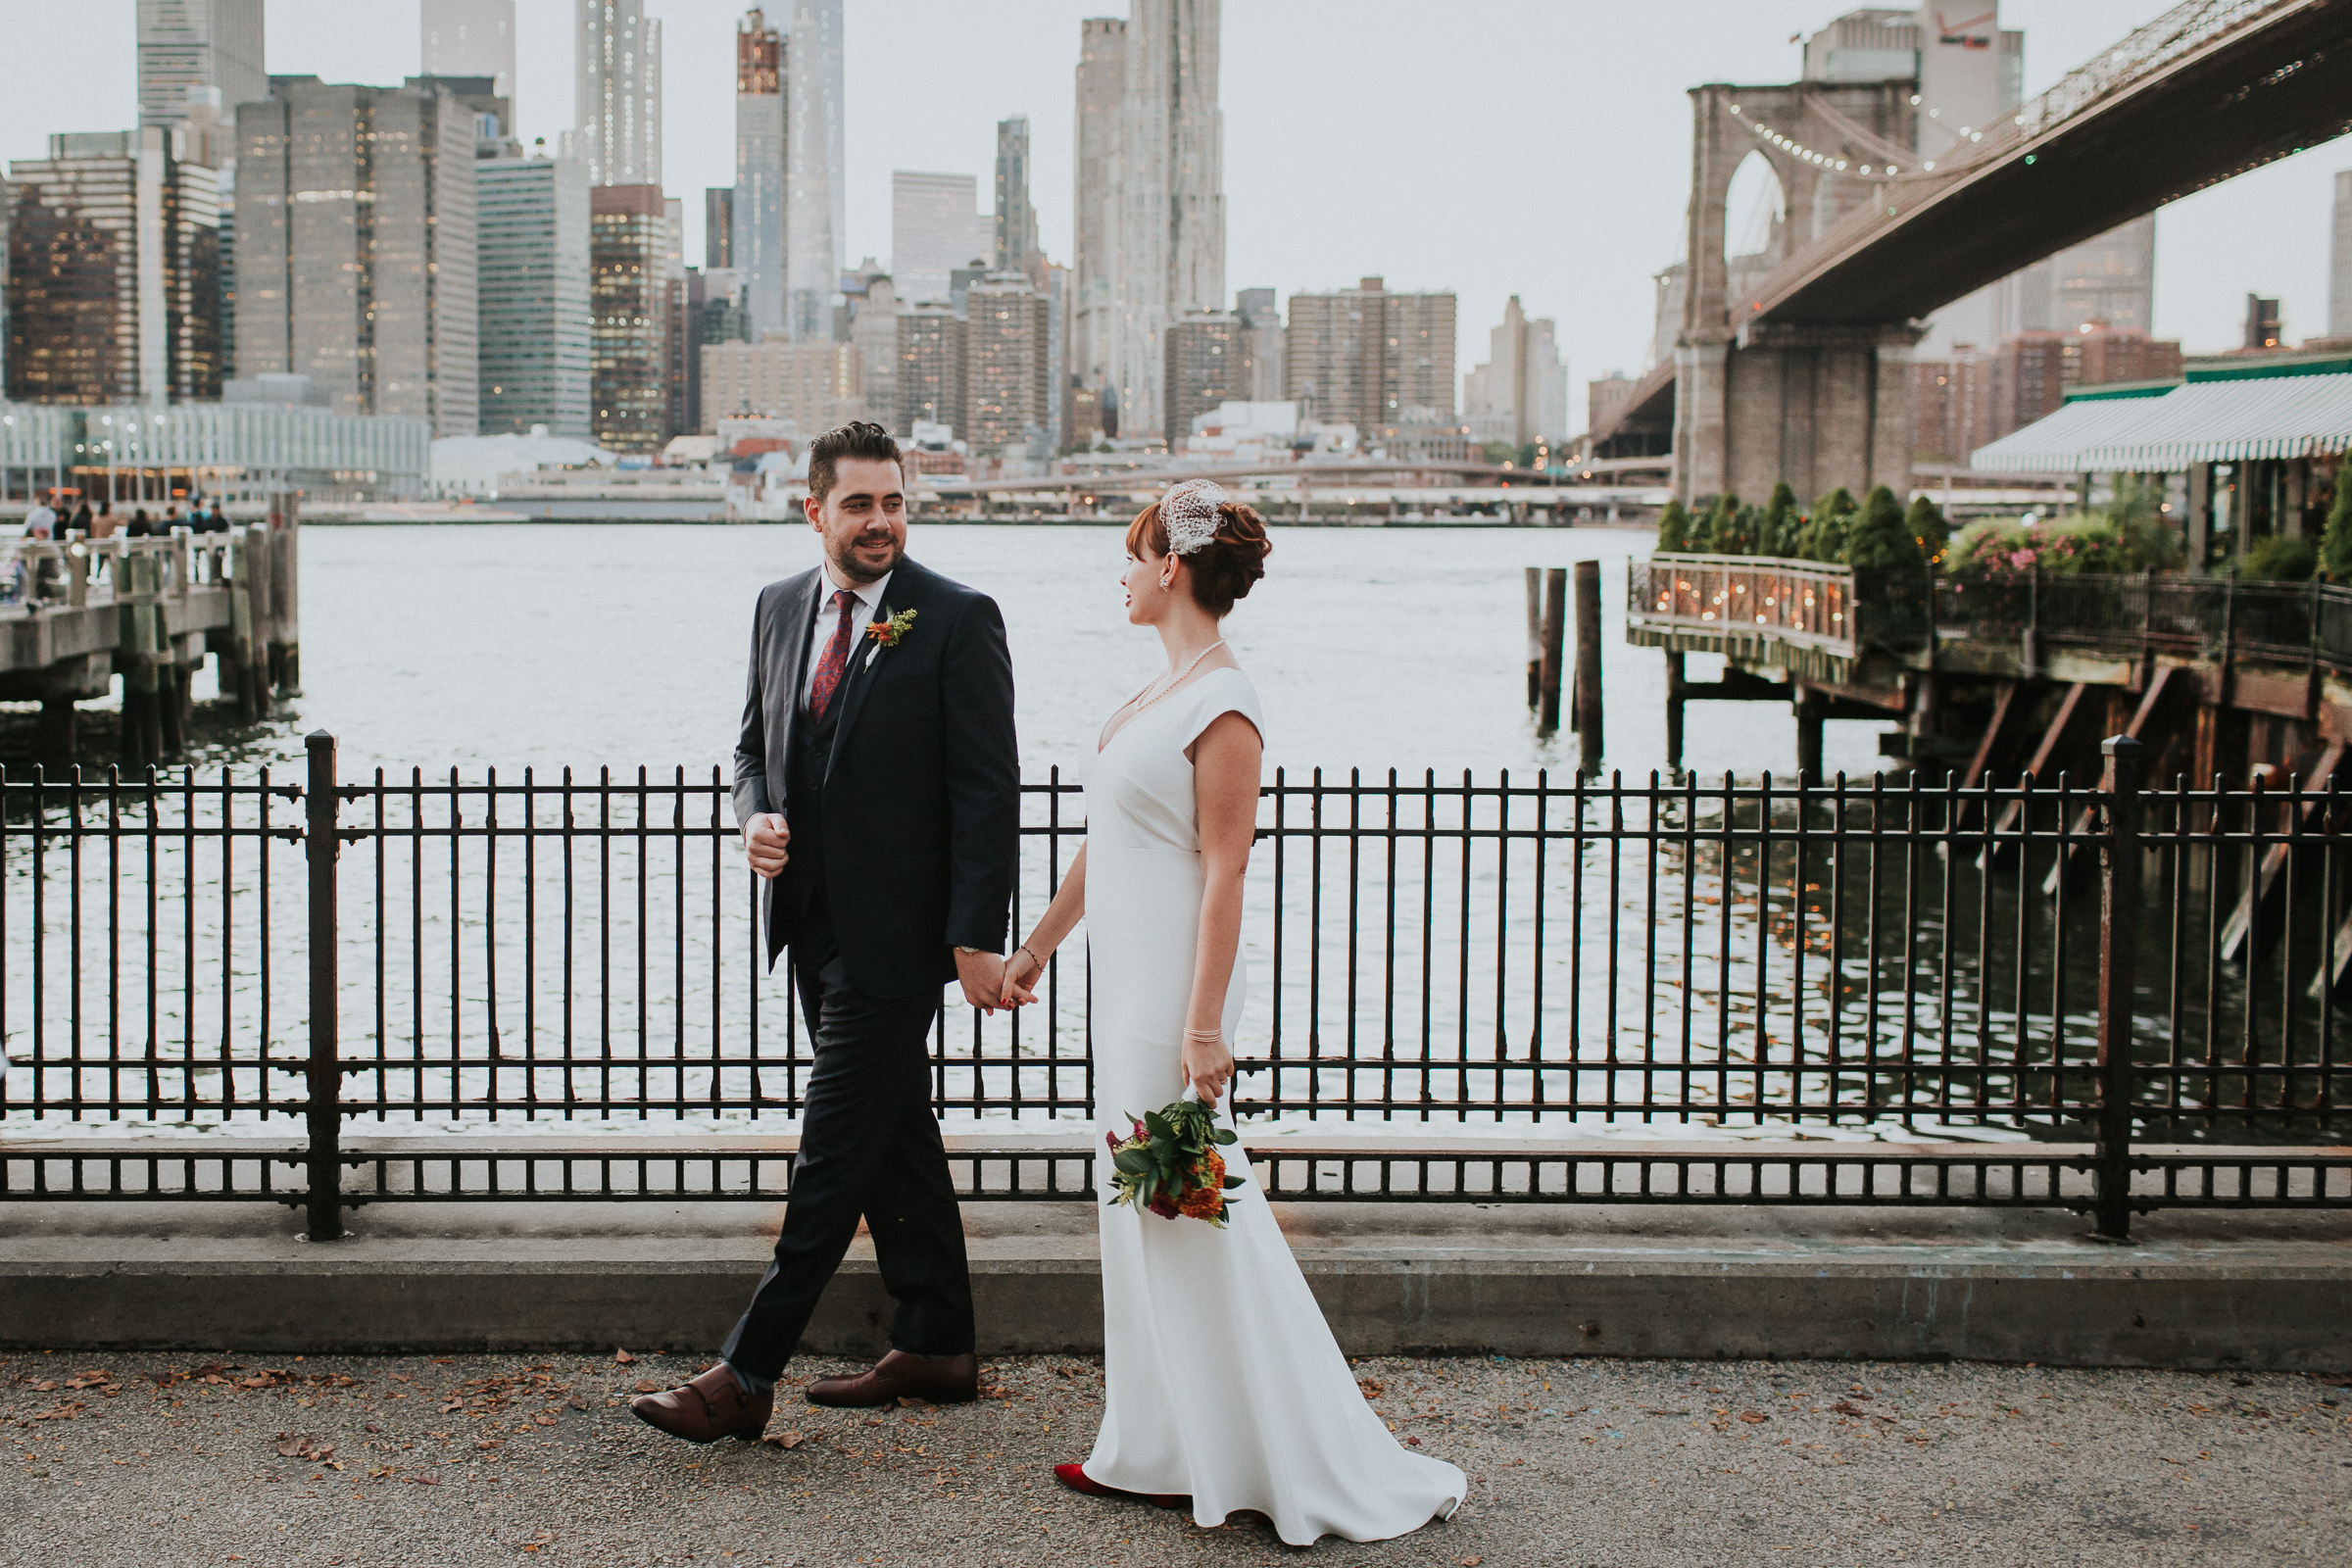 Dumbo-Brooklyn-Bridge-Park-NYC-Elopement-Documentary-Photographer-63.jpg